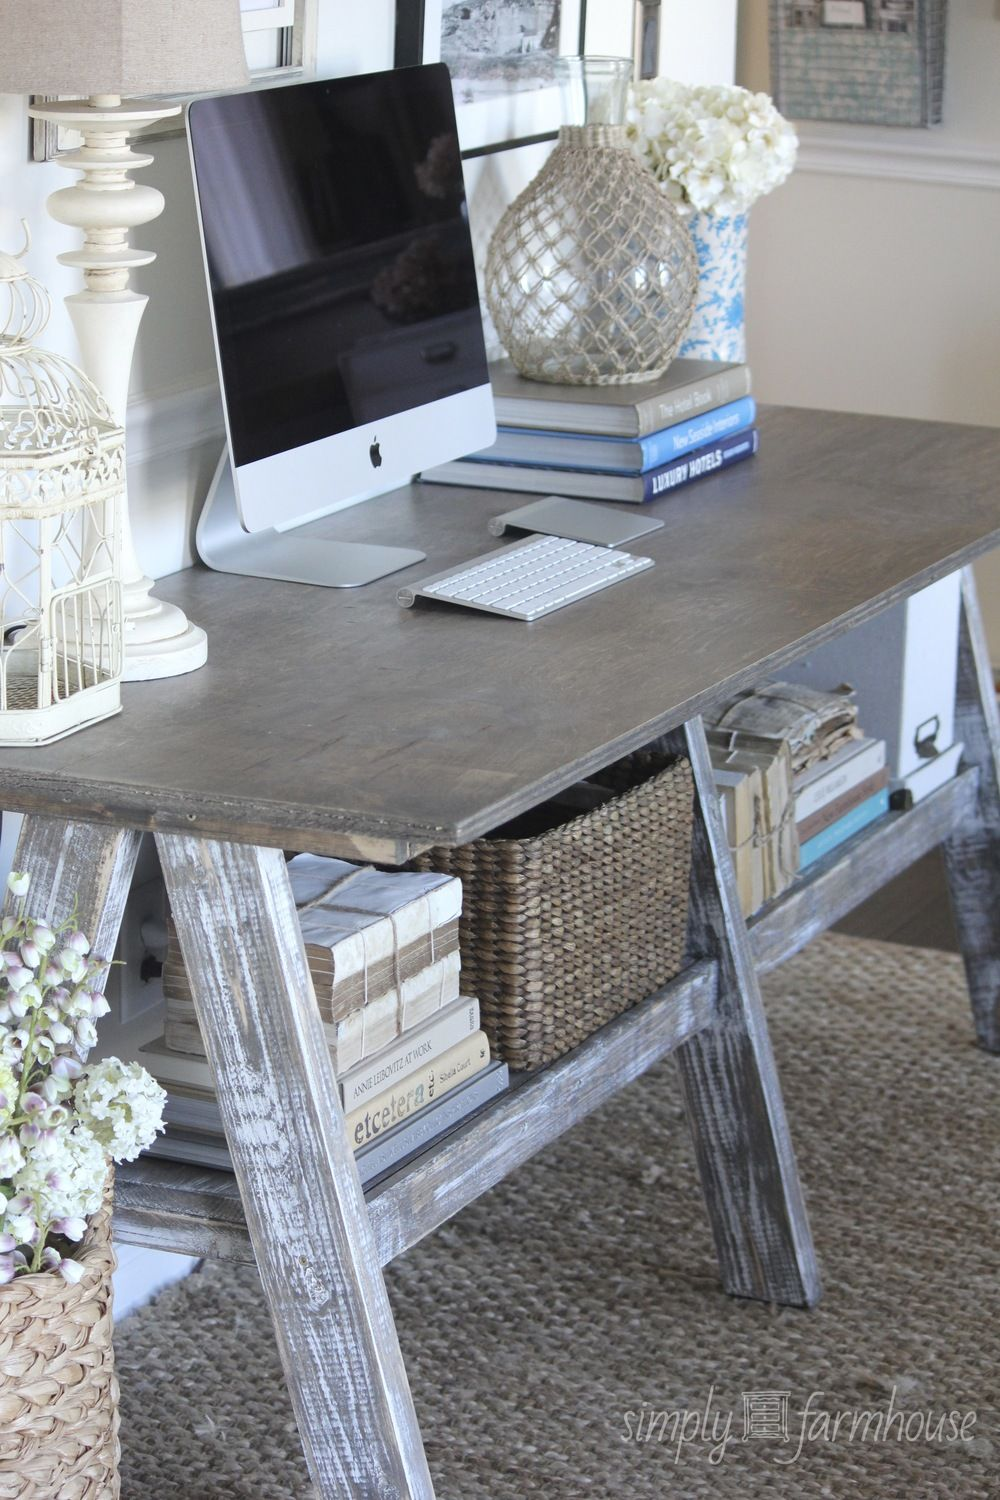 Love the old farm table mixed w/ high tech devices. The perfect blend of  new and old. Rustic Home Office or workspace